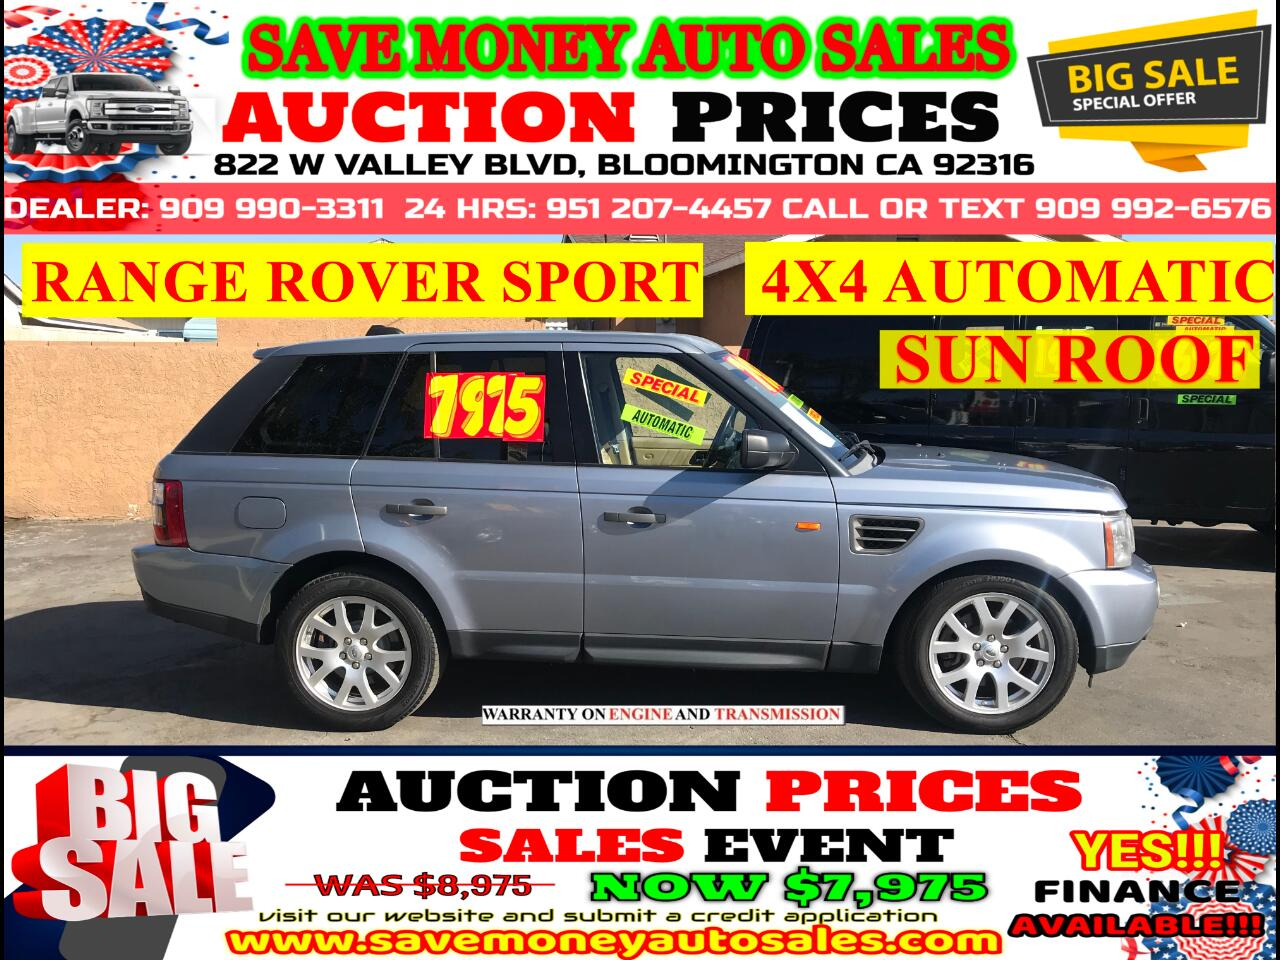 2008 Land Rover Range Rover Sport HSE> AUTOMATIC> SUN ROOF> FULLY LOADED